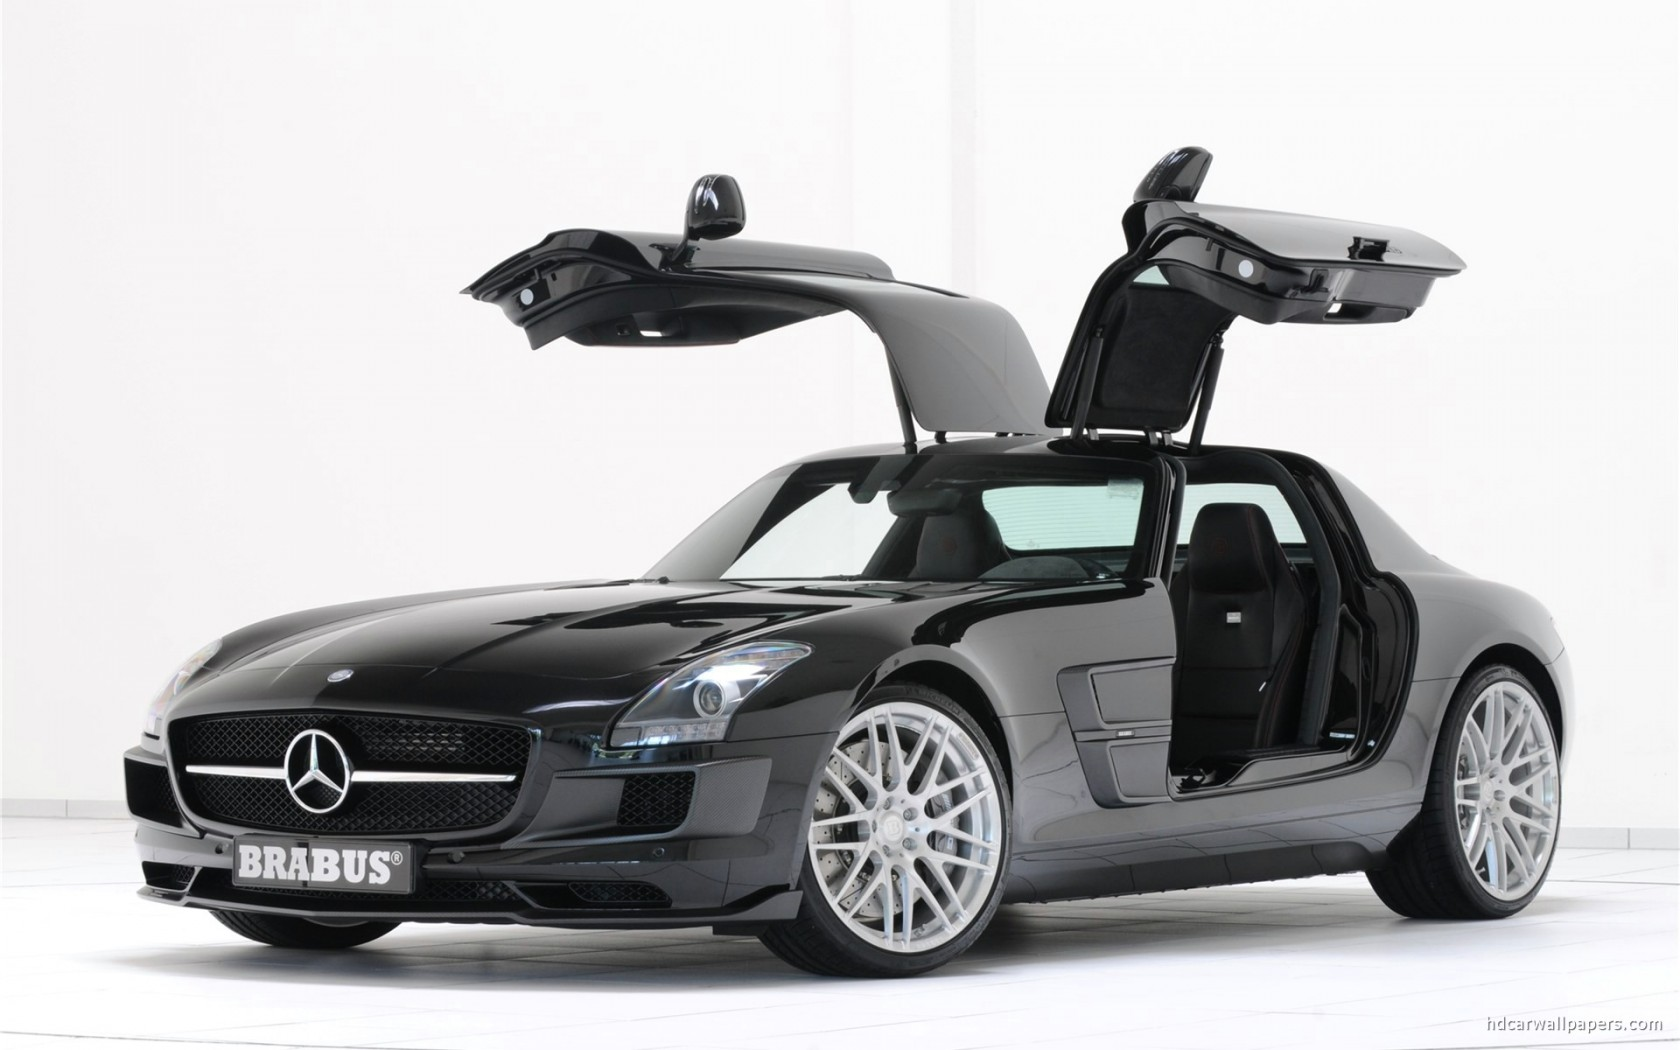 brabus mercedes benz sls amg 2011 wallpaper in 1680x1050. Black Bedroom Furniture Sets. Home Design Ideas